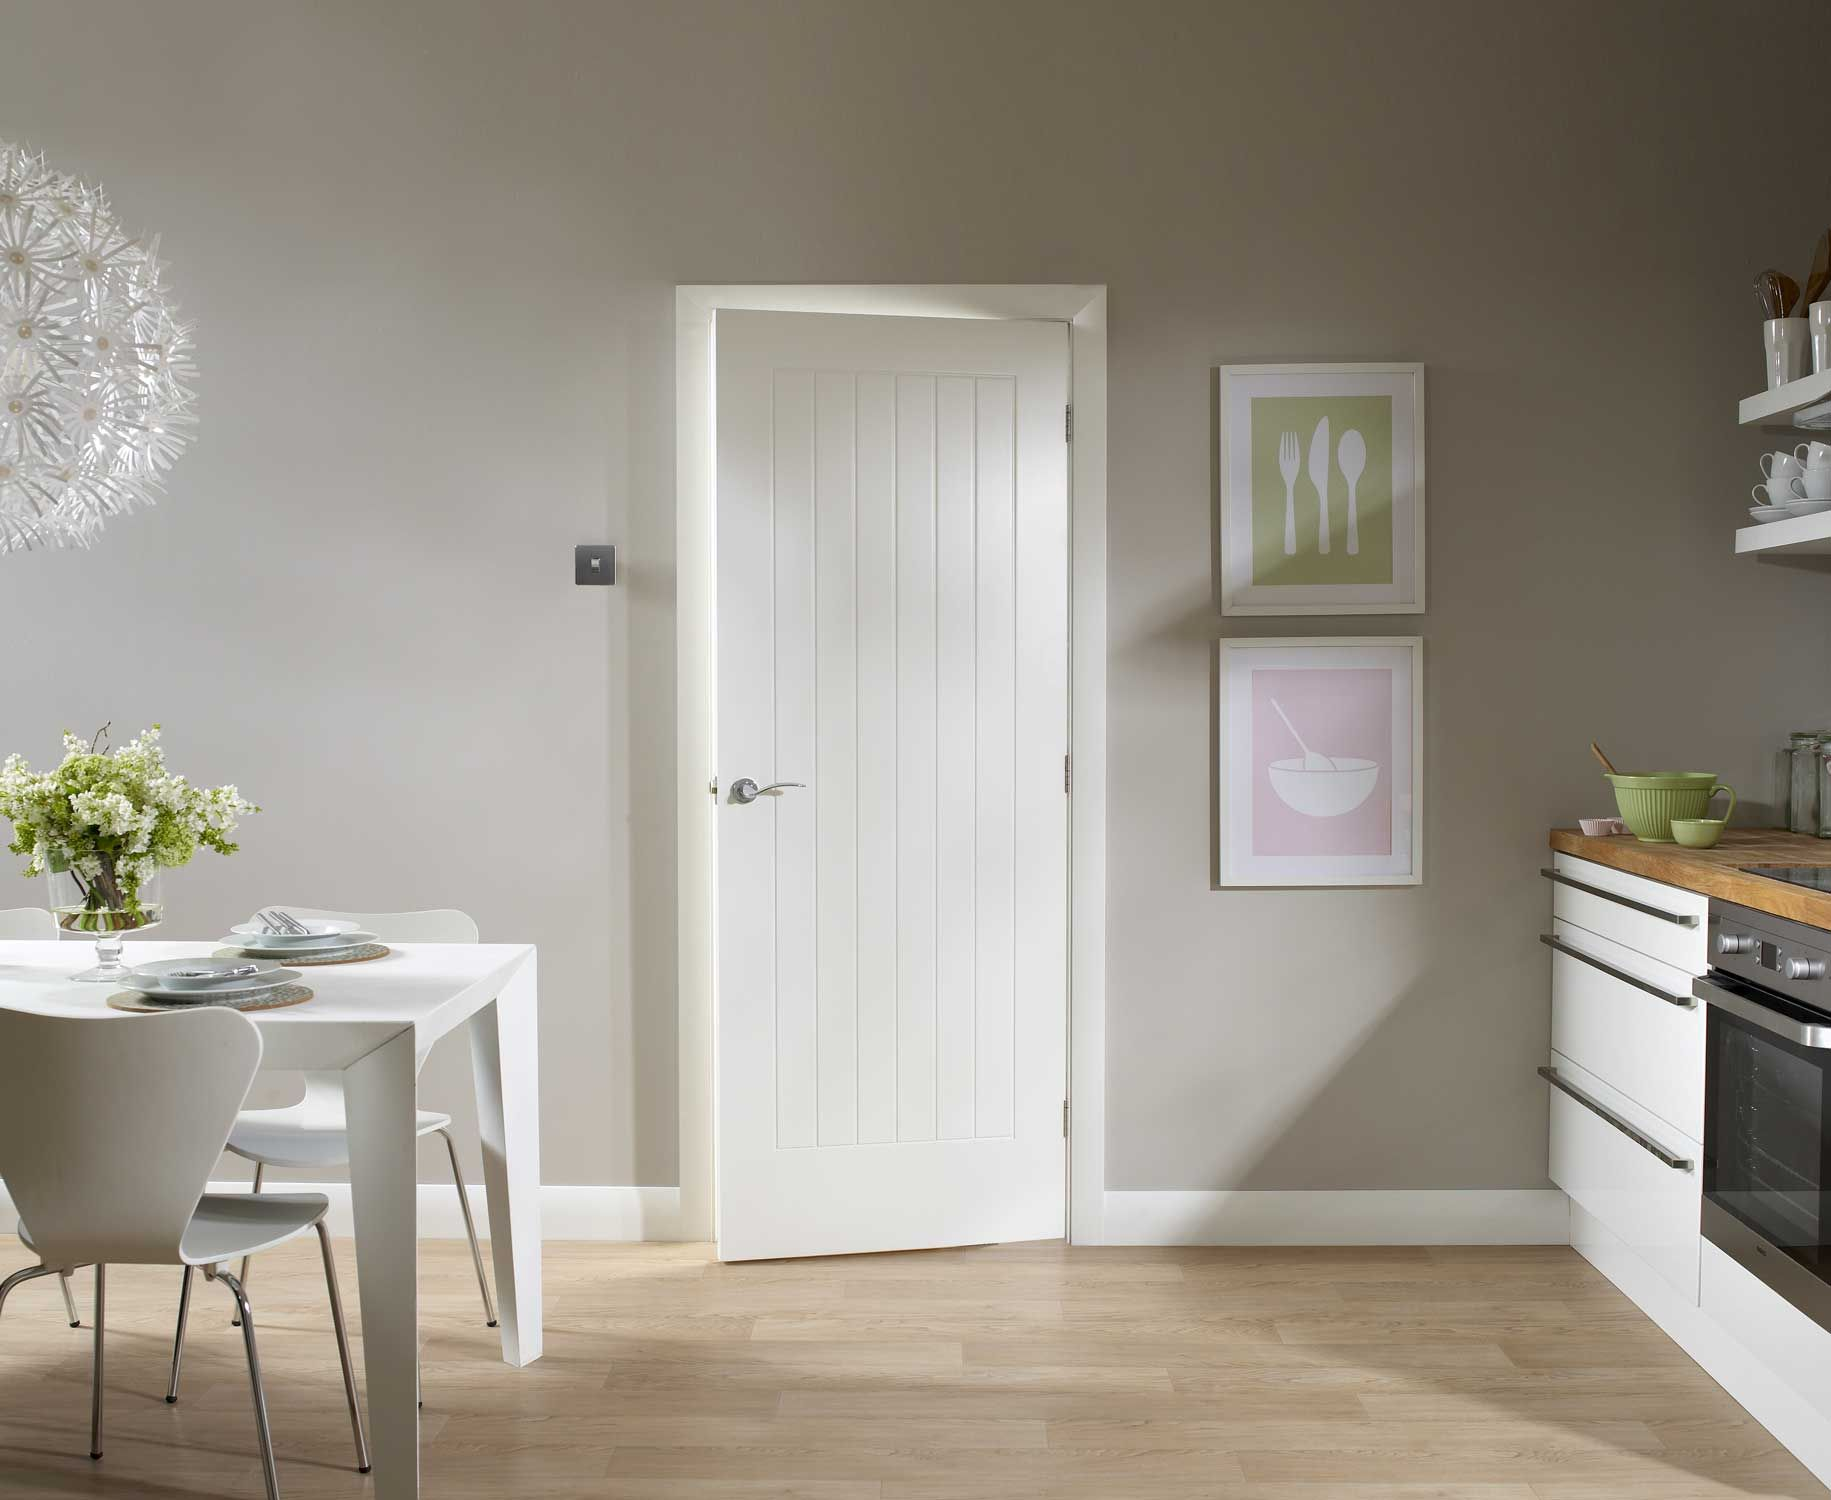 An unfinished internal white primed door with 6 solid vertical panels. Vertical panelled contemporary design perfect for the modern home. & Suffolk White Door Lifestyle | Durys | Pinterest | Inside doors ...